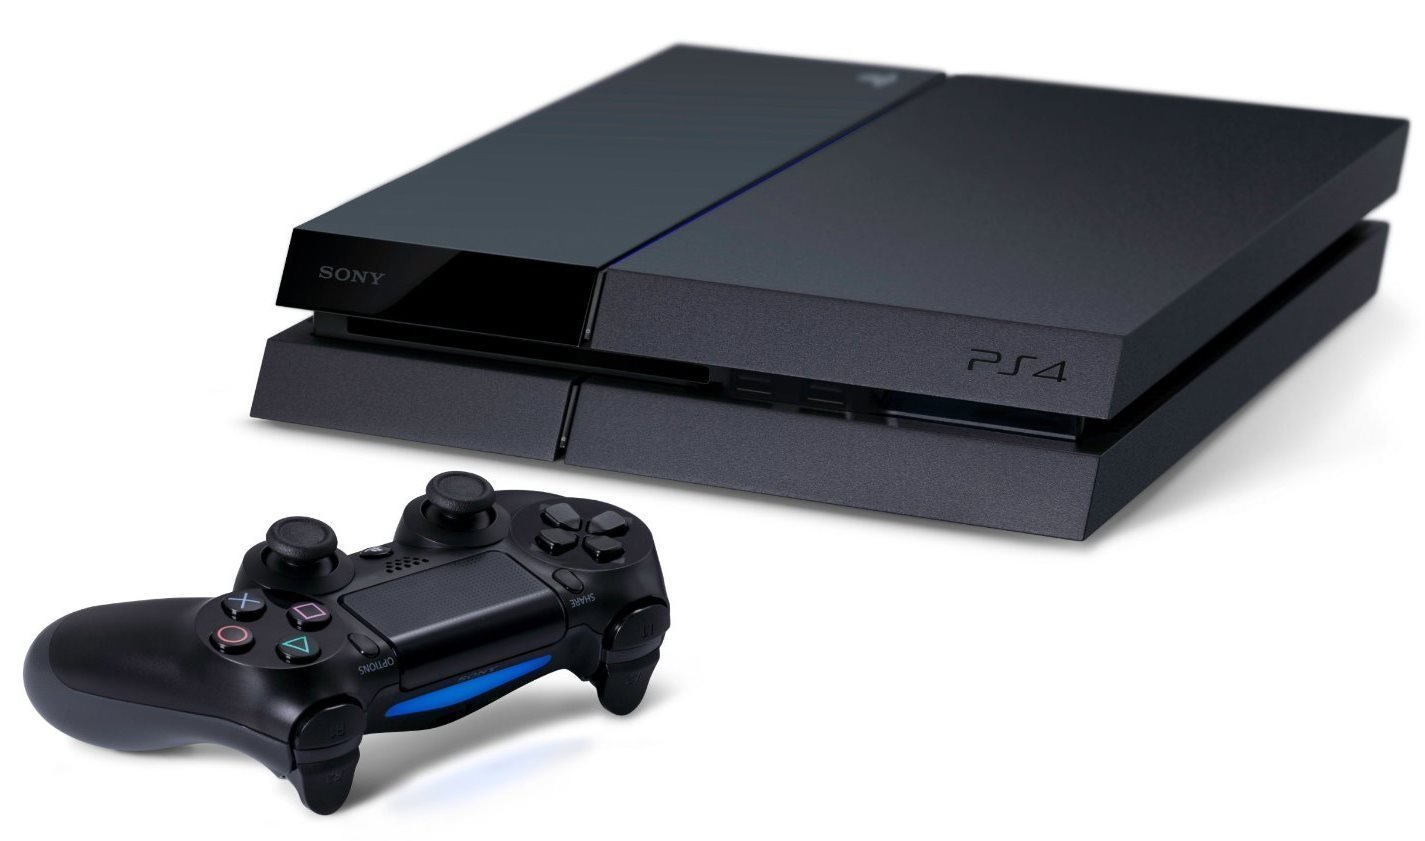 September 2014 24 Miles Microsoft Xbox 360 Elite Dissected Layout Changes Revealed After Almost A Year Of Next Generation Gaming Sonys Playstation 4 Has Proven To Be Superior Microsofts One Where Sales Are Concerned